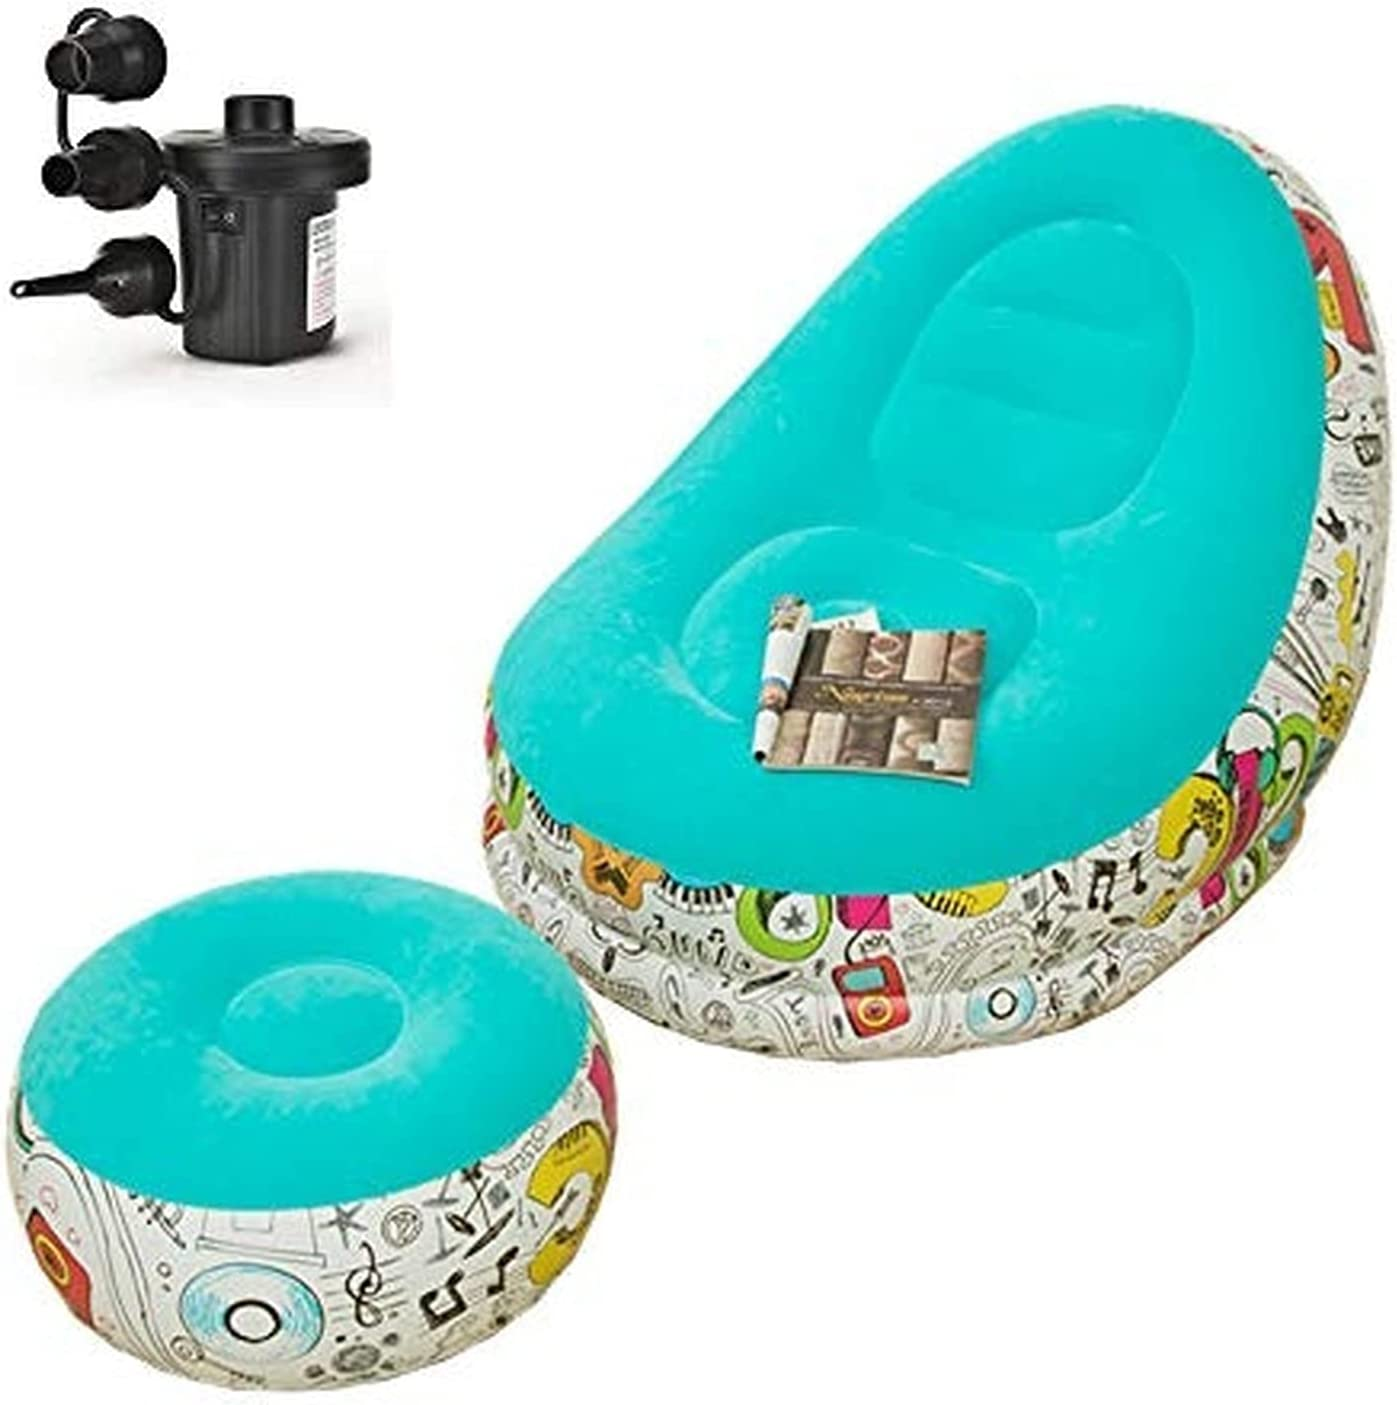 KYHS Inflatable Leisure Sofa Chair Footstool Now free shipping Folding and Lounger sale